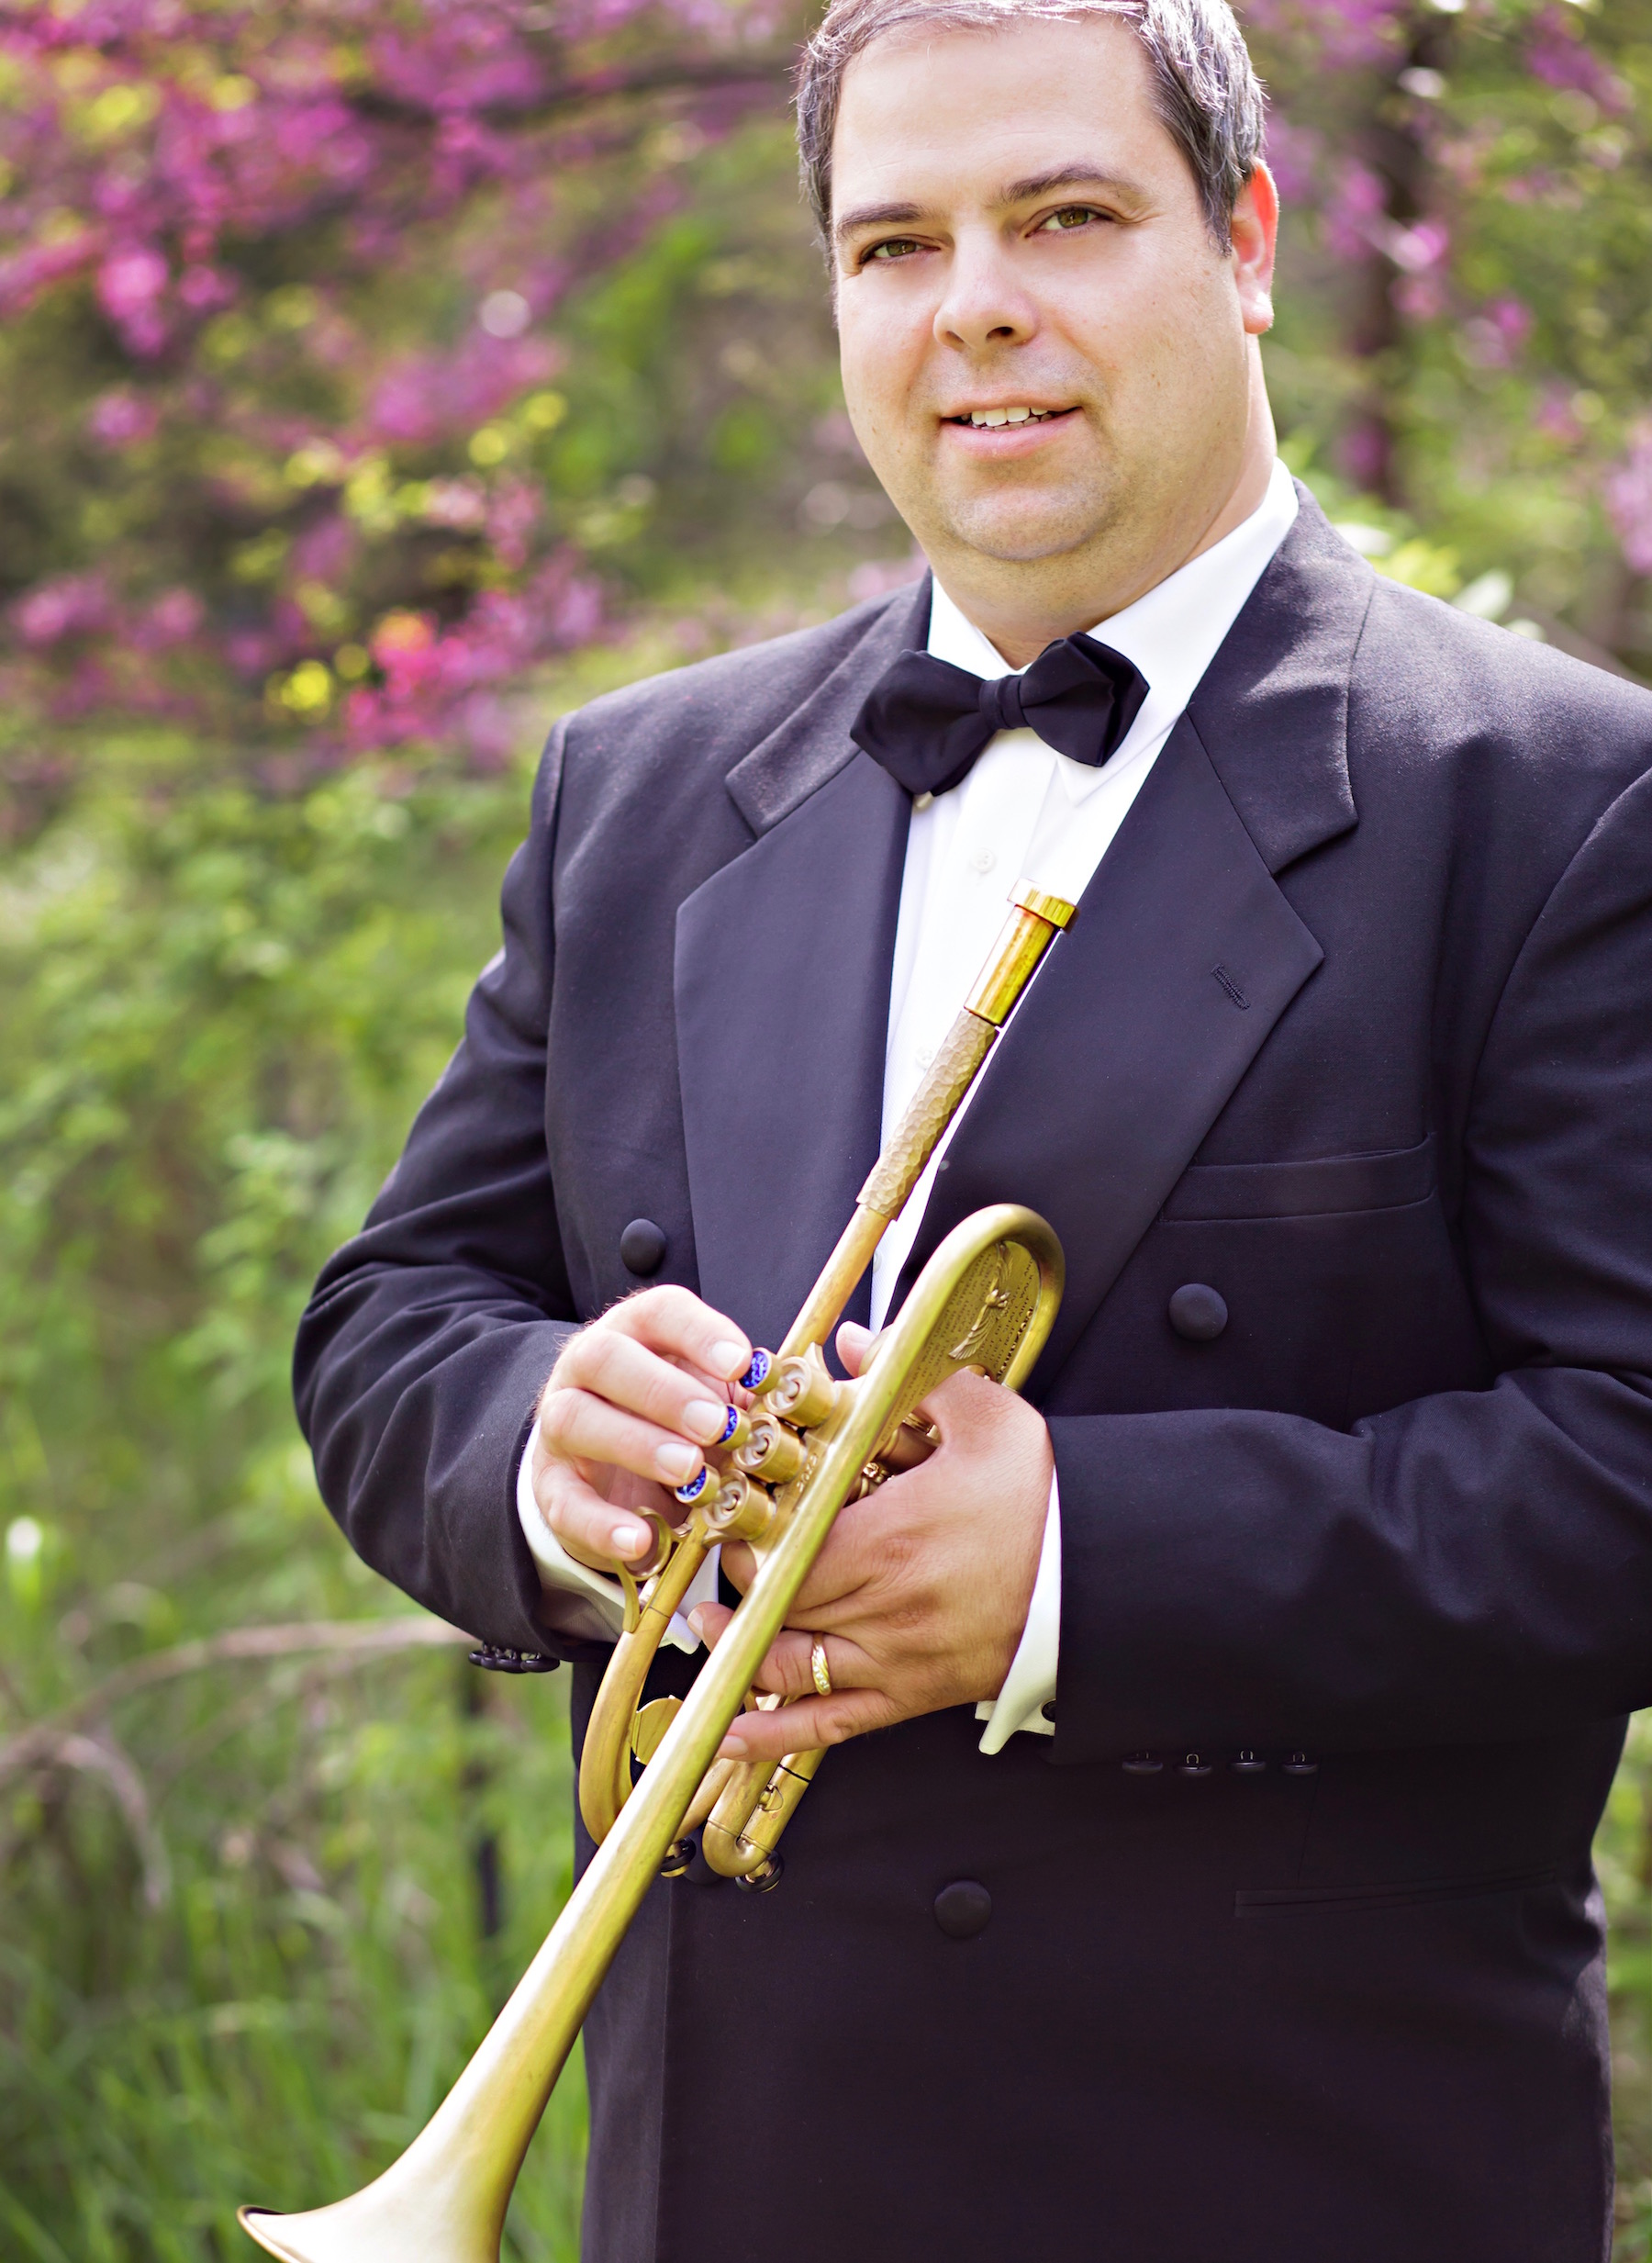 James Knabe, Christian Trumpet Artist and Music Ministry